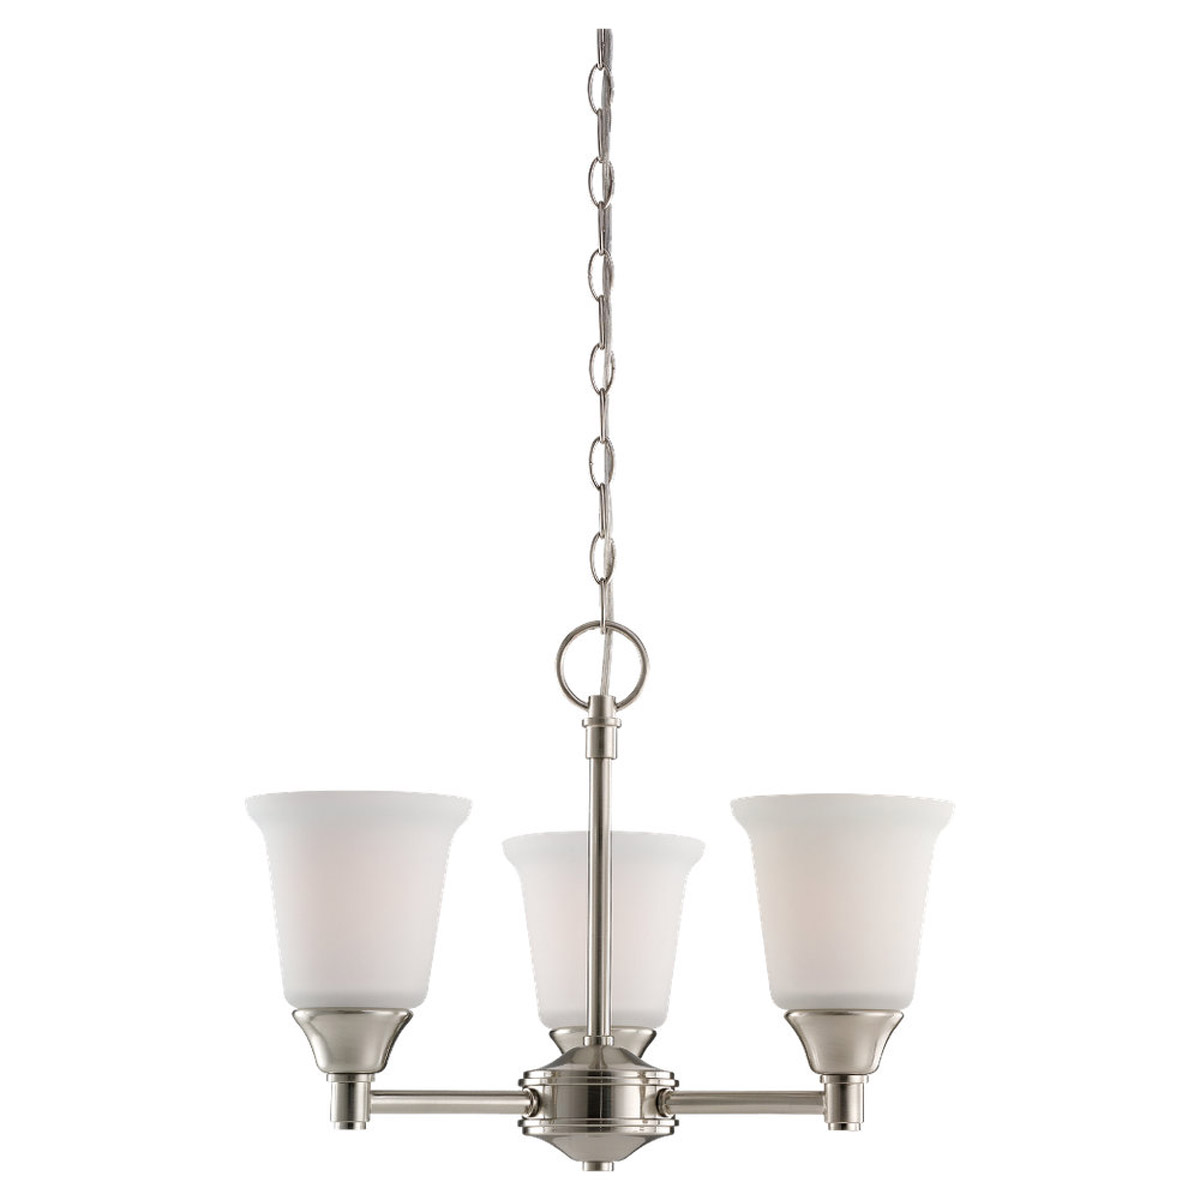 Sea Gull Lighting Belair 3 Light Fluorescent Chandelier in Brushed Nickel 31790BLE-962 photo